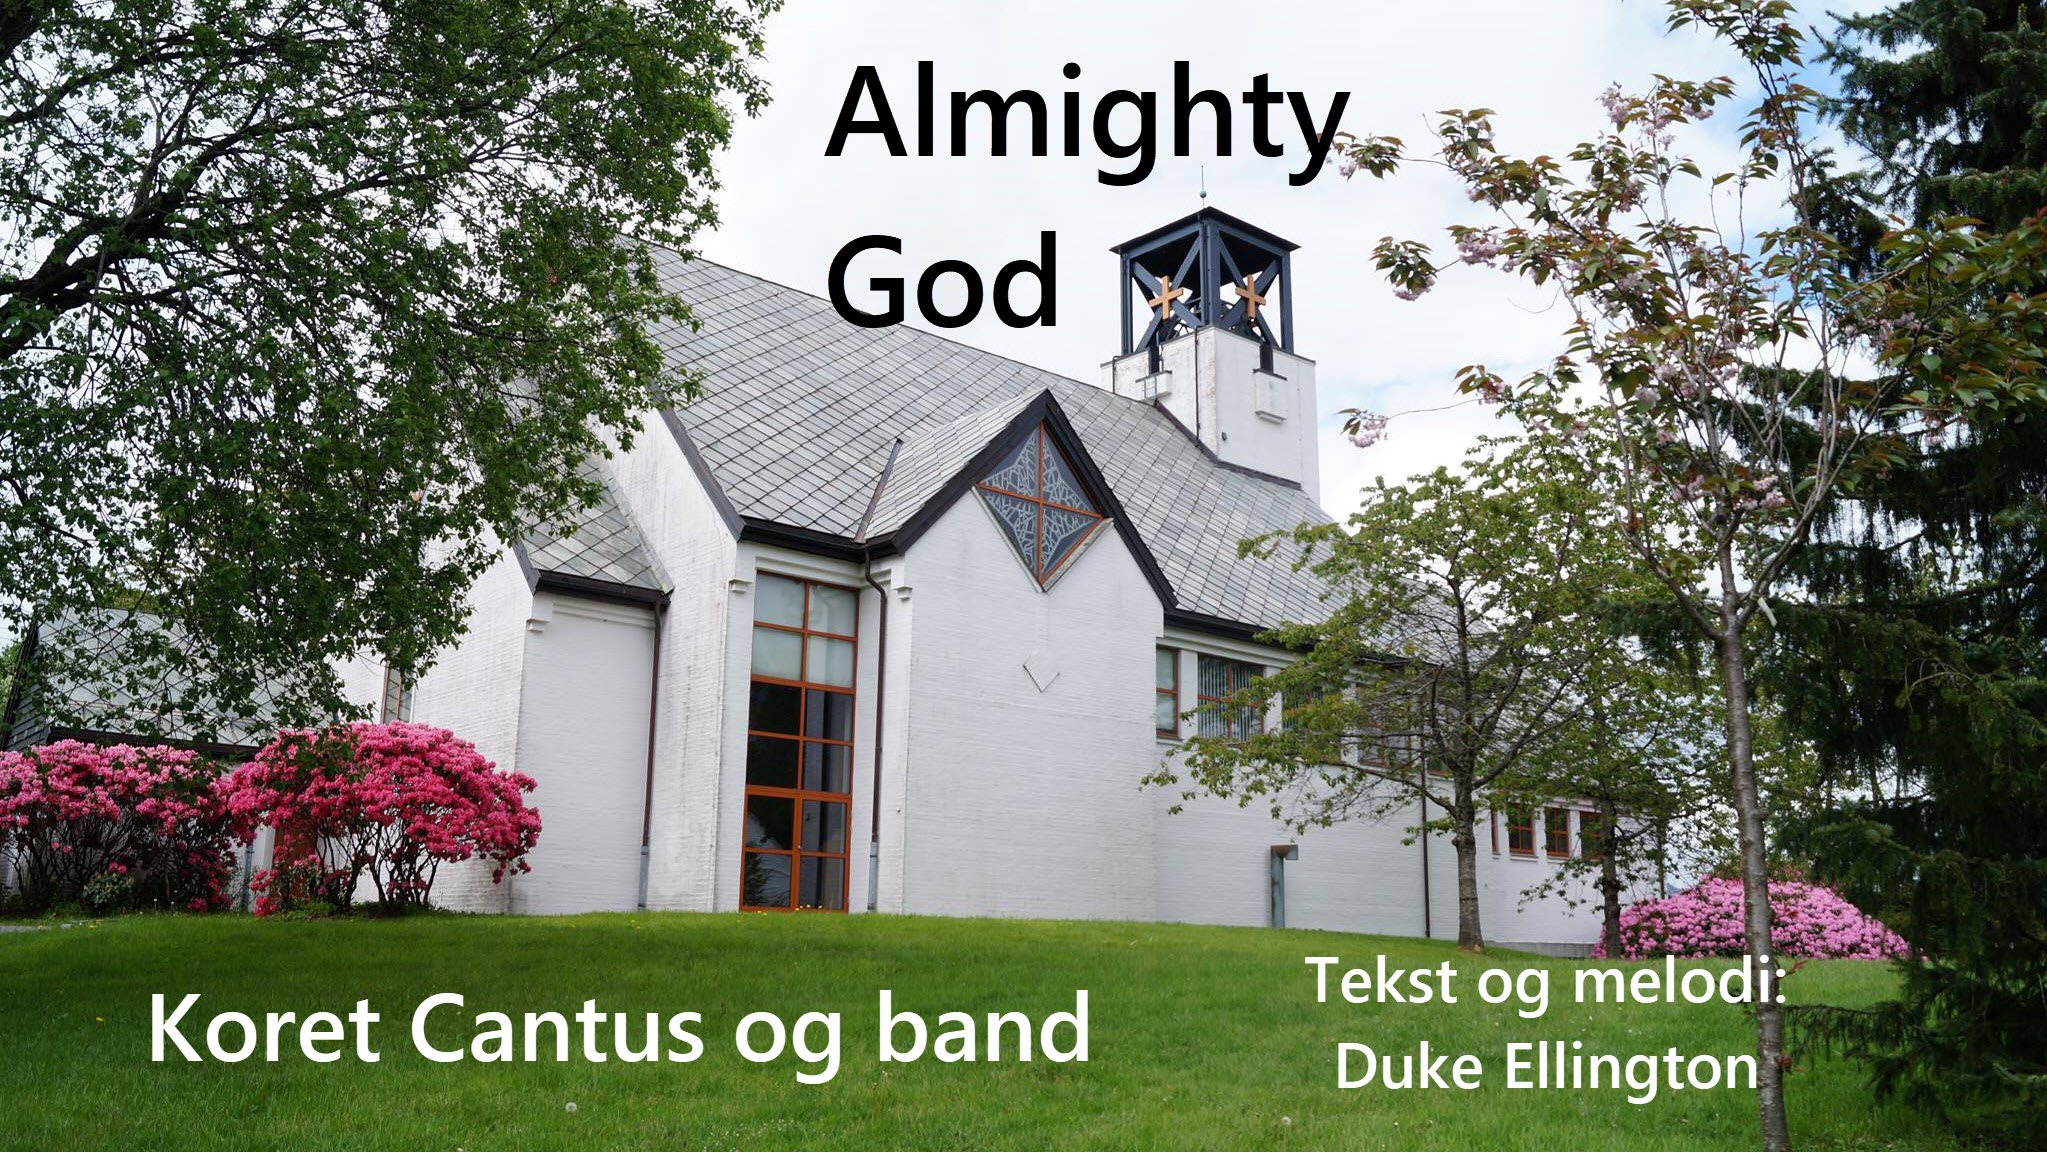 Cantus_almighty_god.jpg